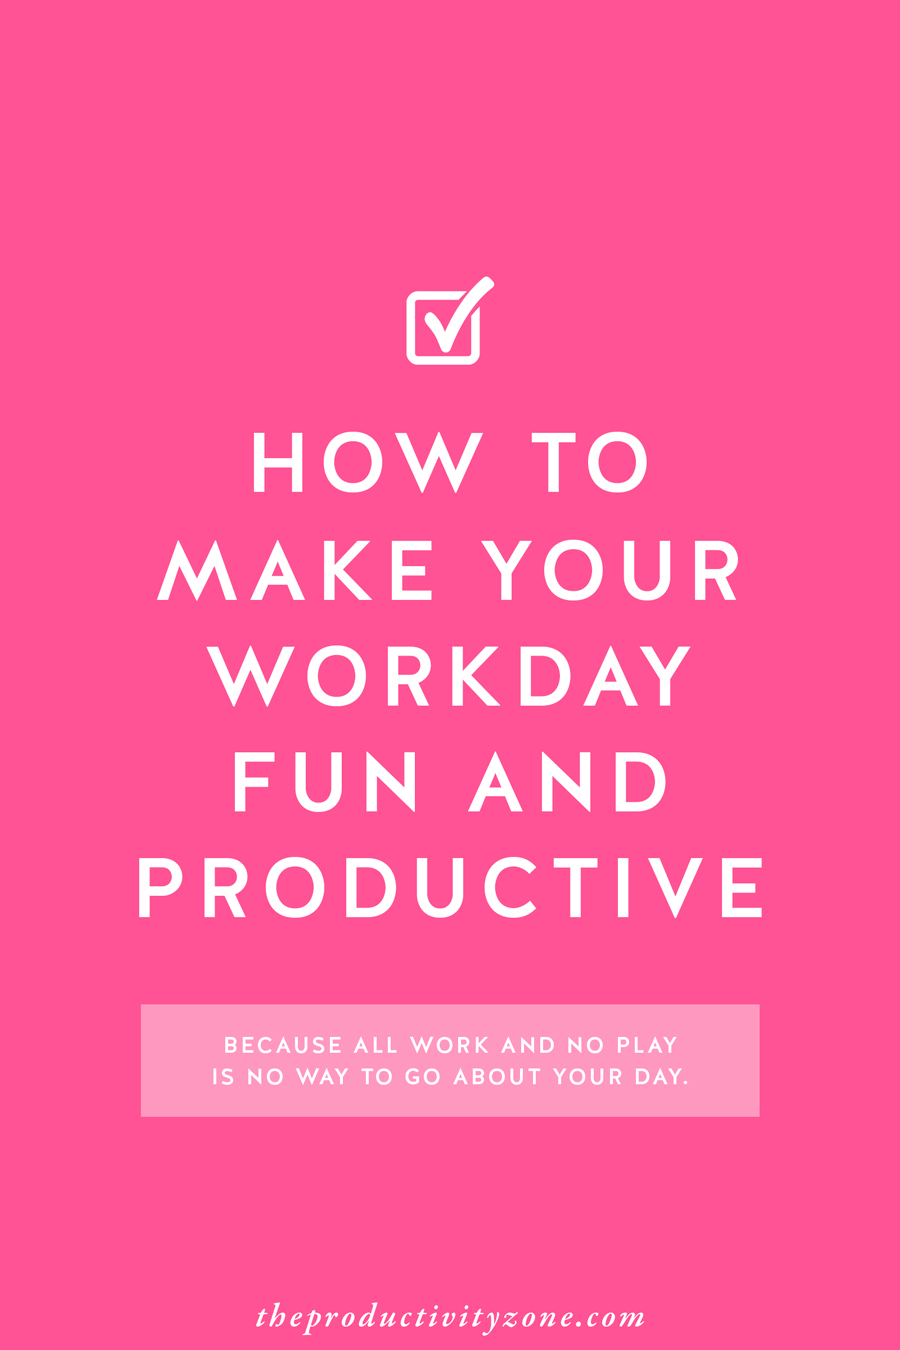 All work and no play is no way to go about your day… Check out 10 super simple ways to make your workday fun and productive on The Productivity Zone!!